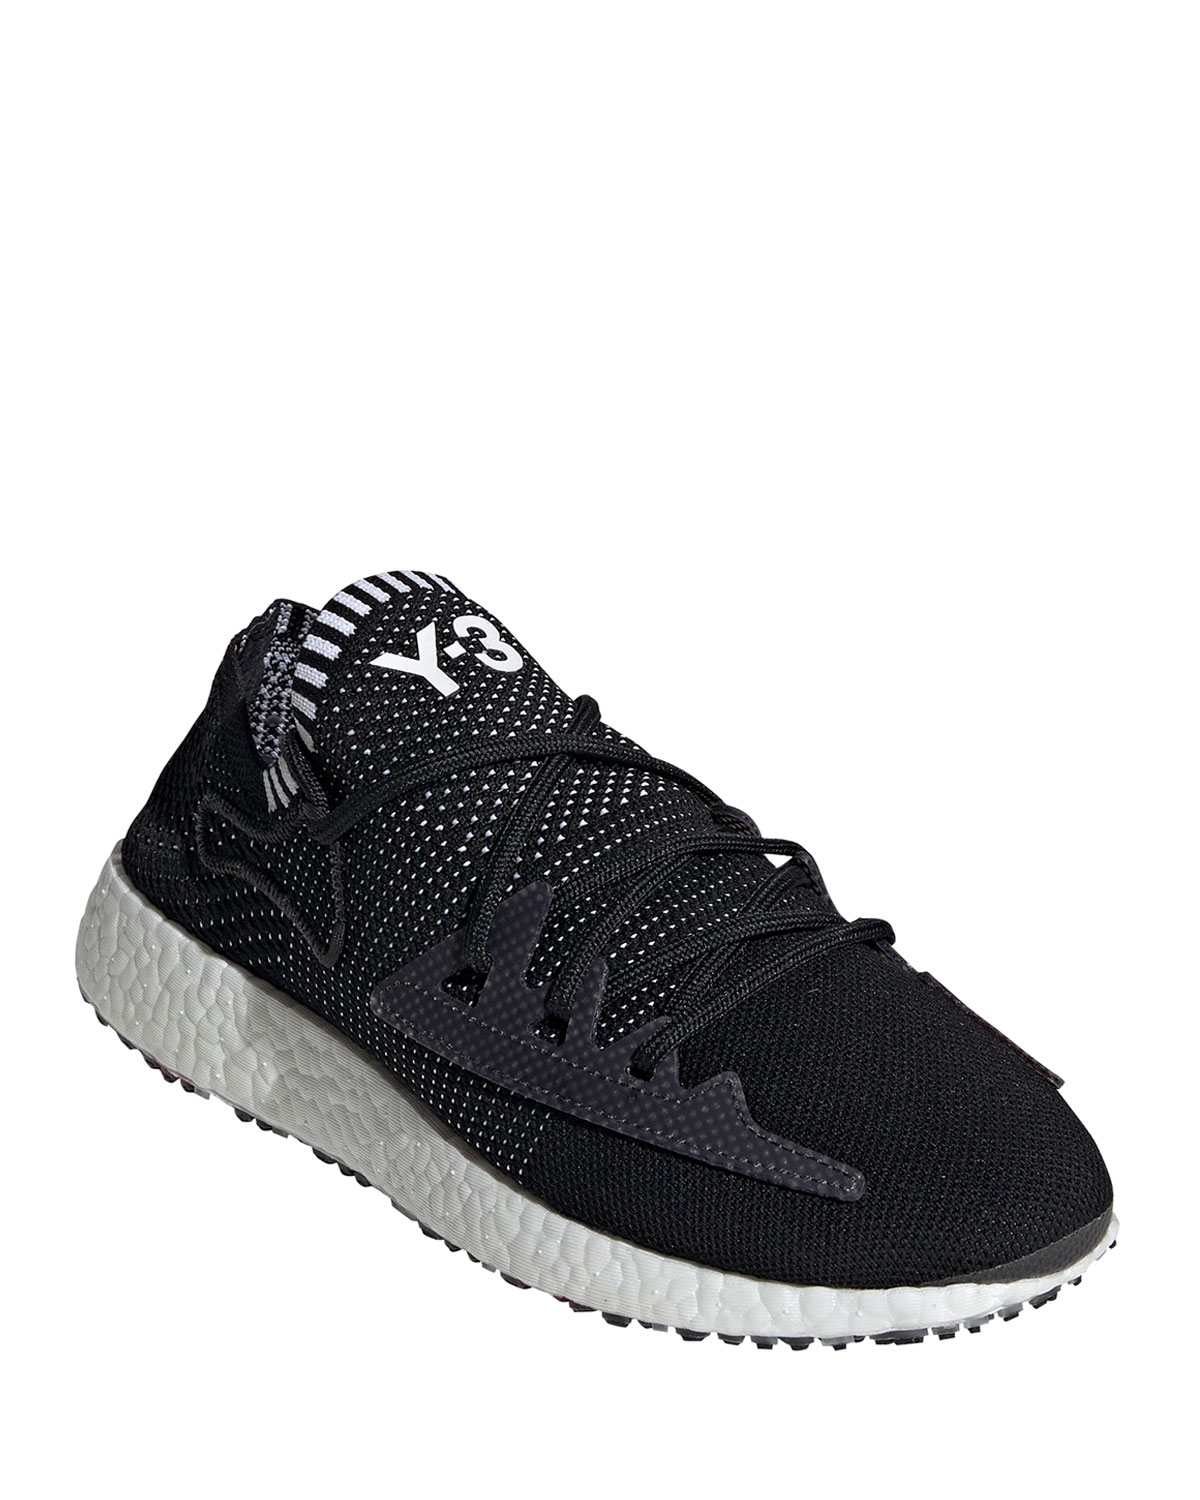 Raito Racer Knit Running Shoes